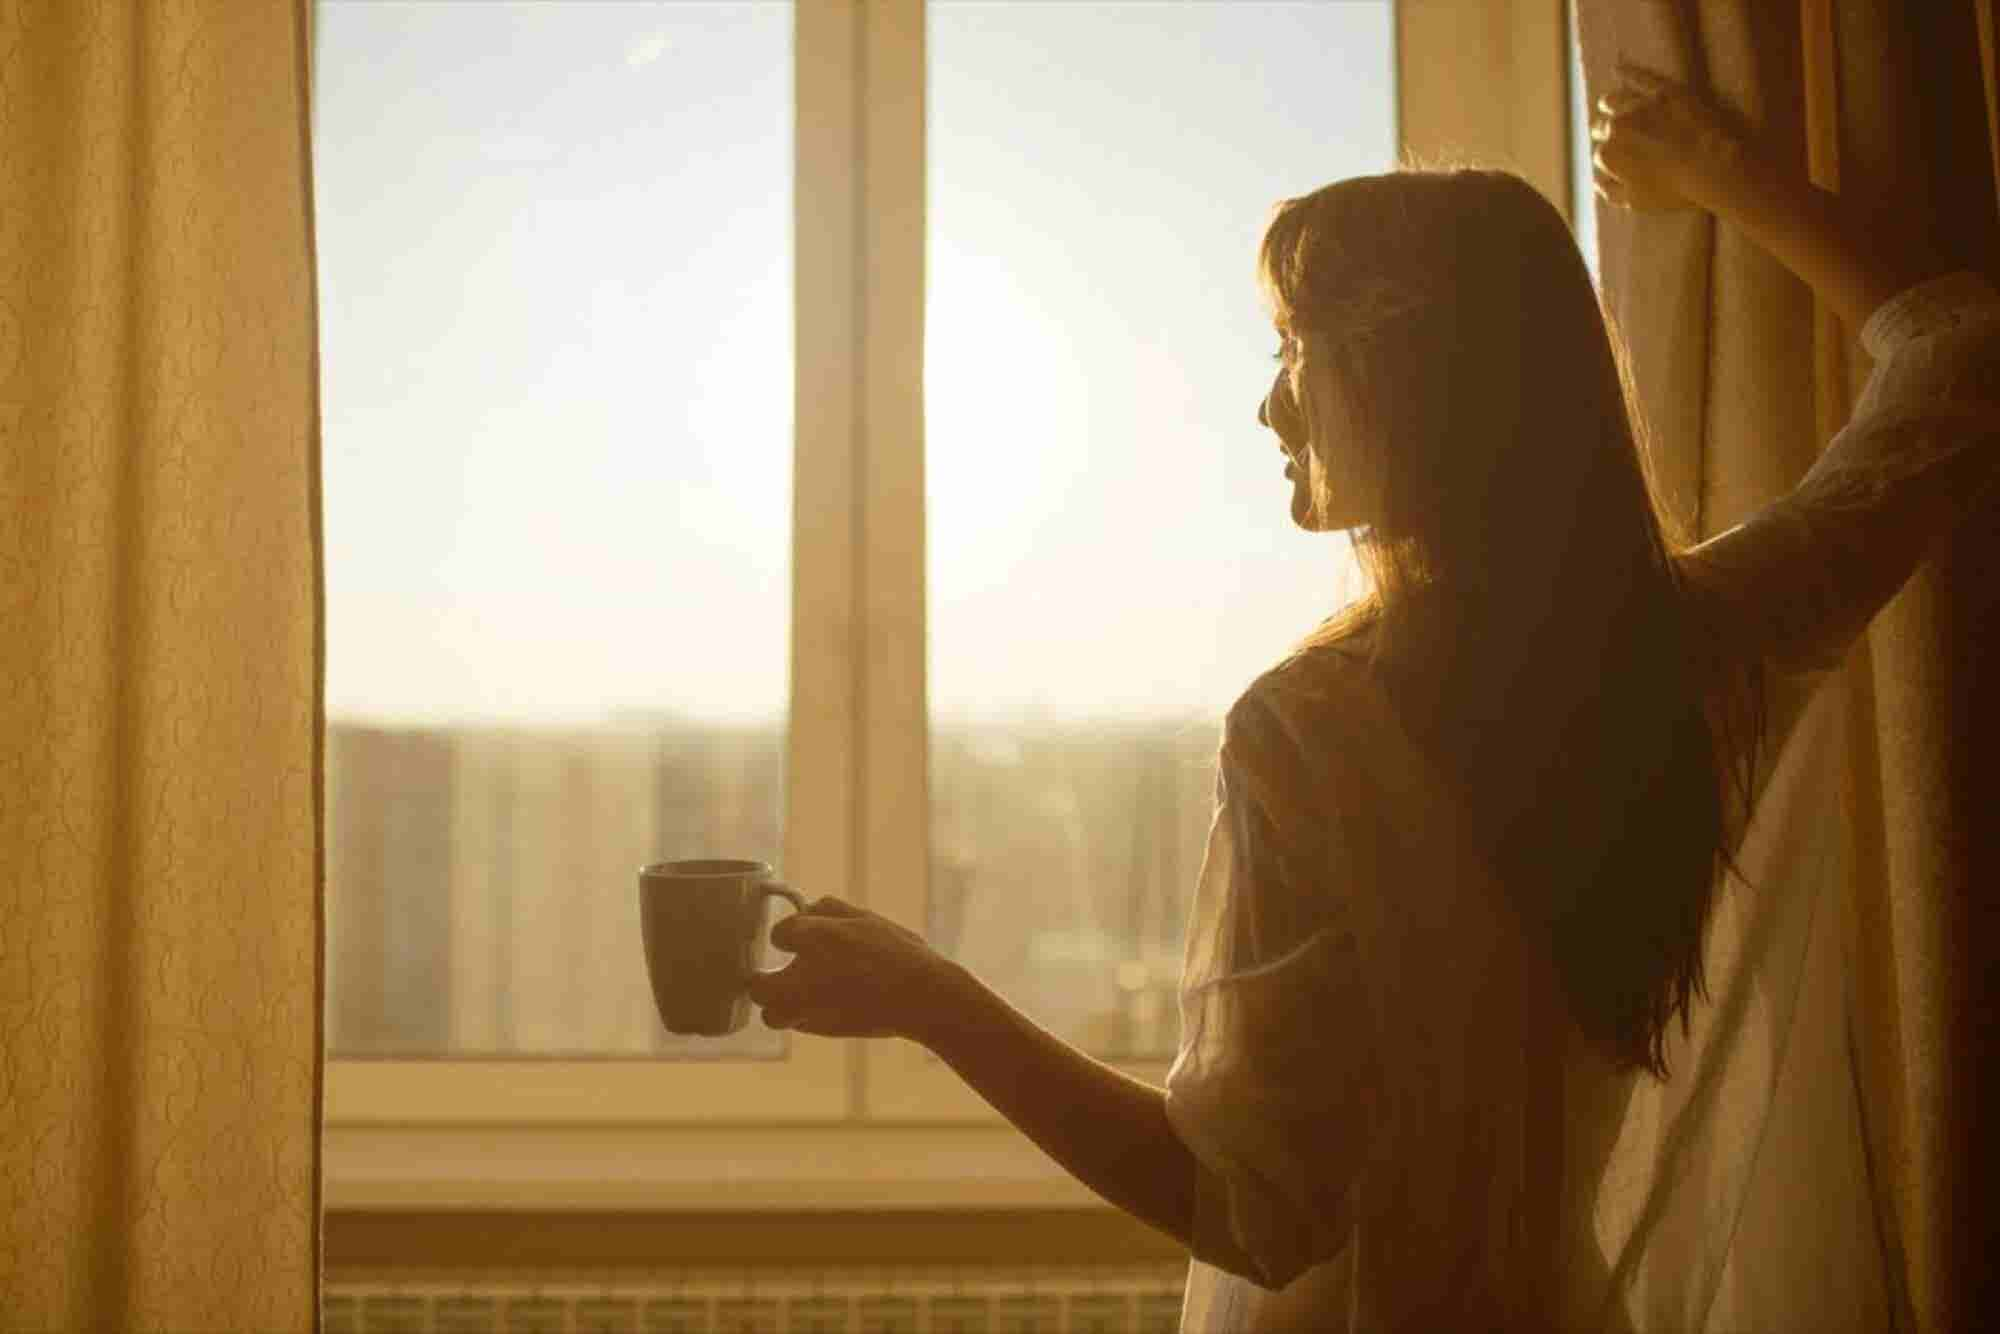 10 Ways to Improve Your Morning Routine